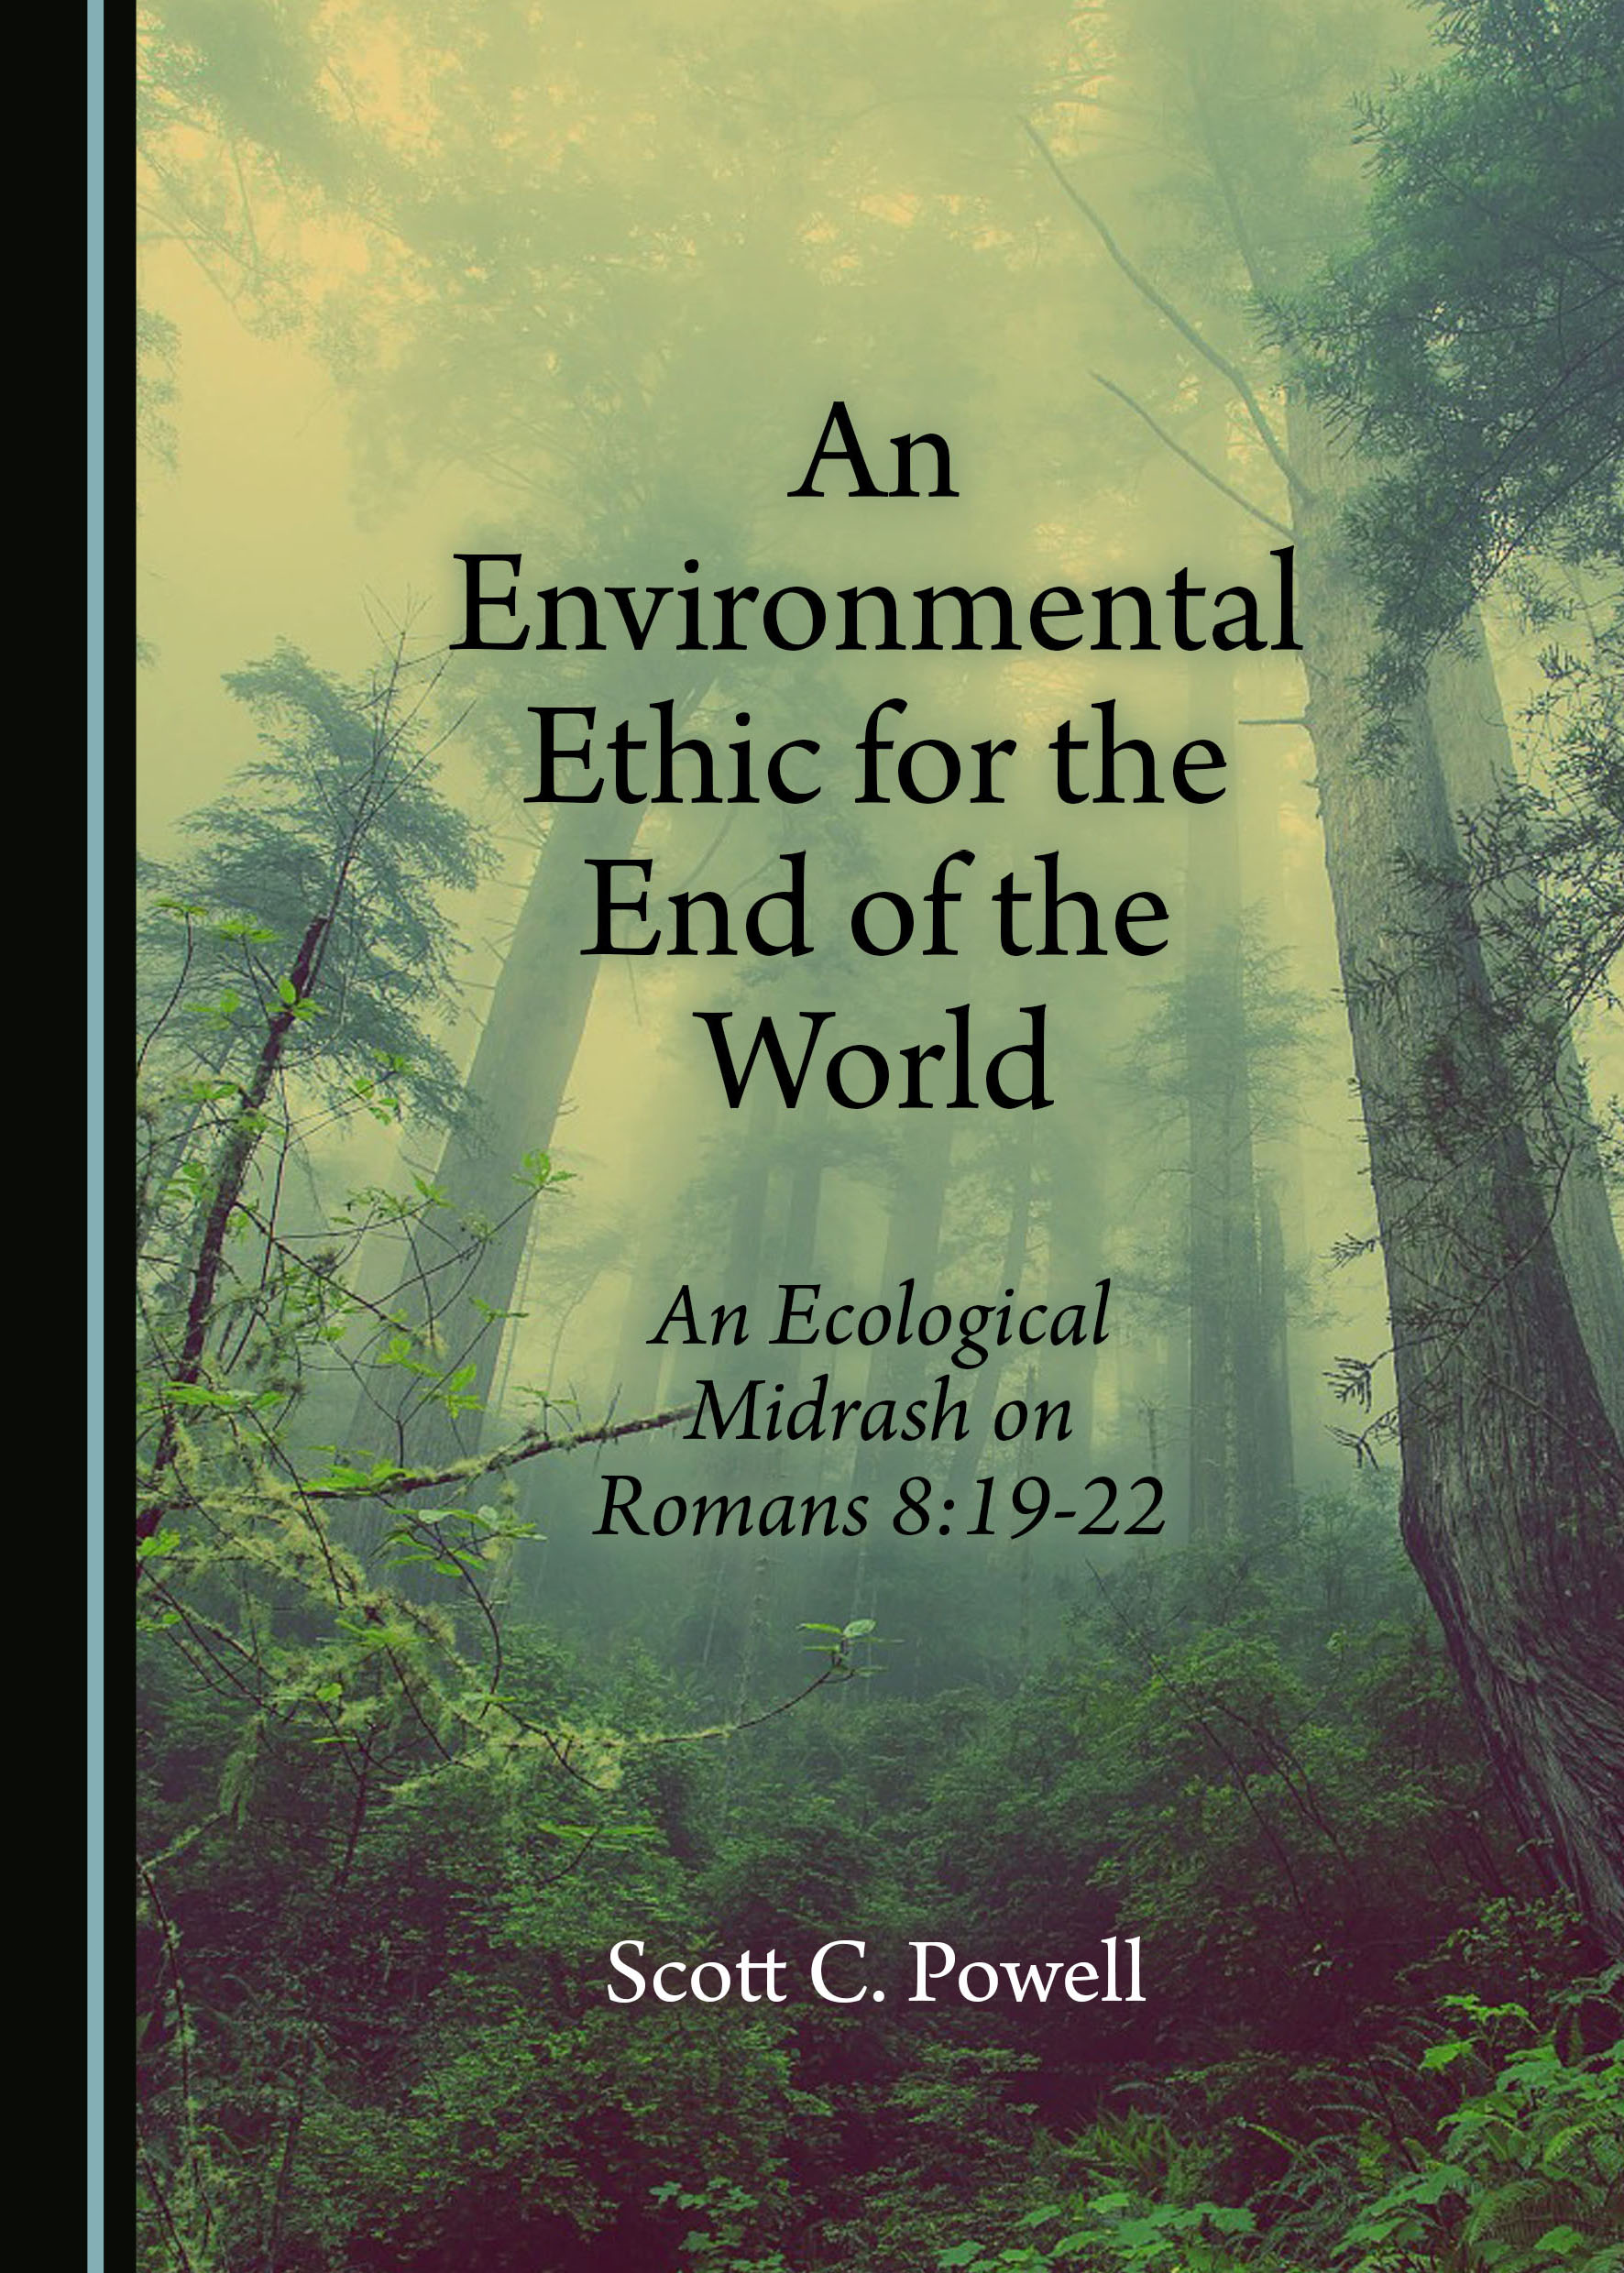 An Environmental Ethic for the End of the World: An Ecological Midrash on Romans 8:19-22